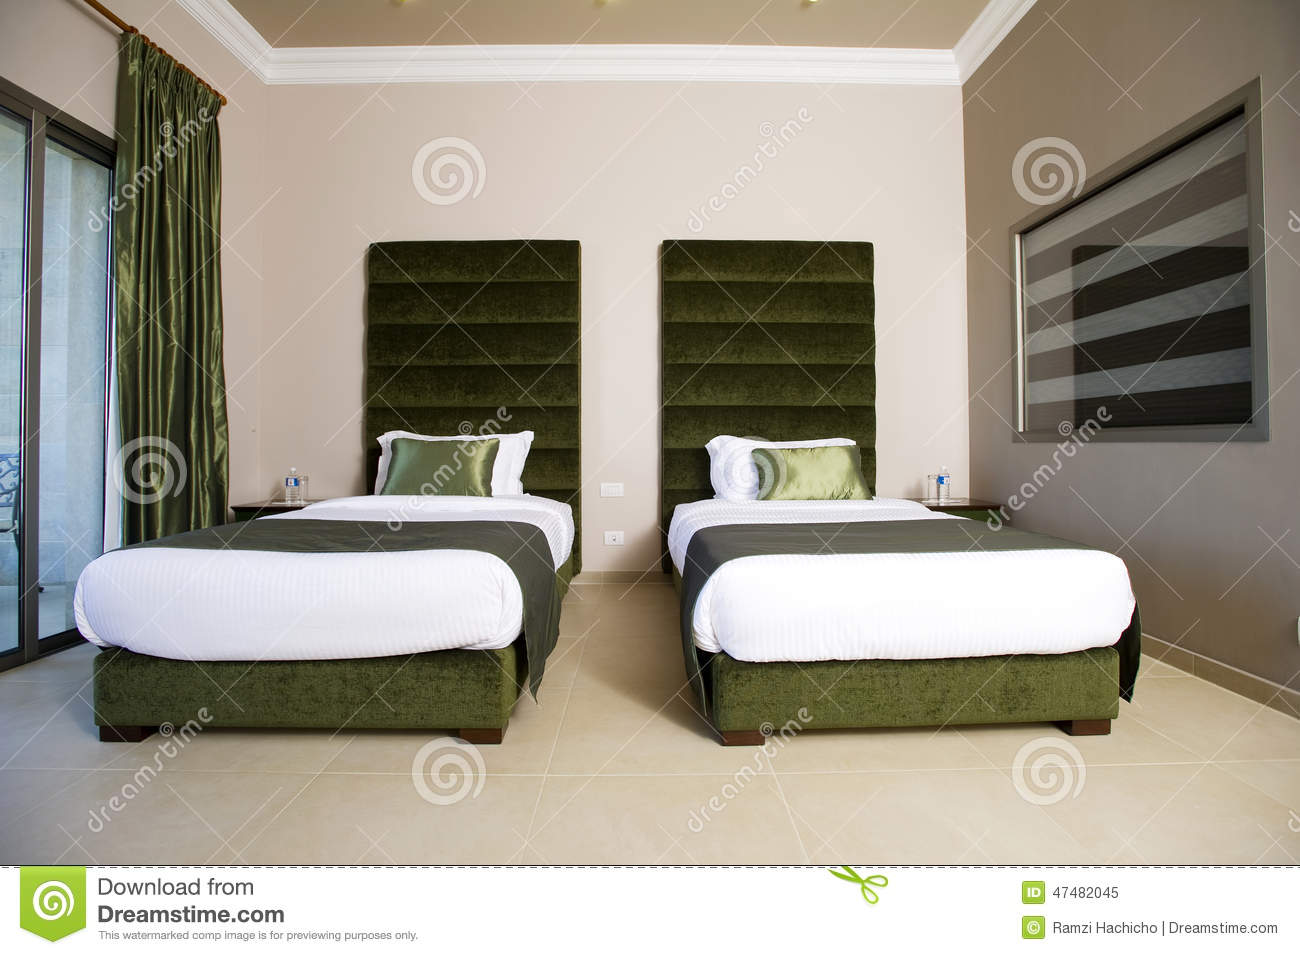 Luxurious hotel bedroom with balconies 5 stars luxury for Chambre 5 etoiles